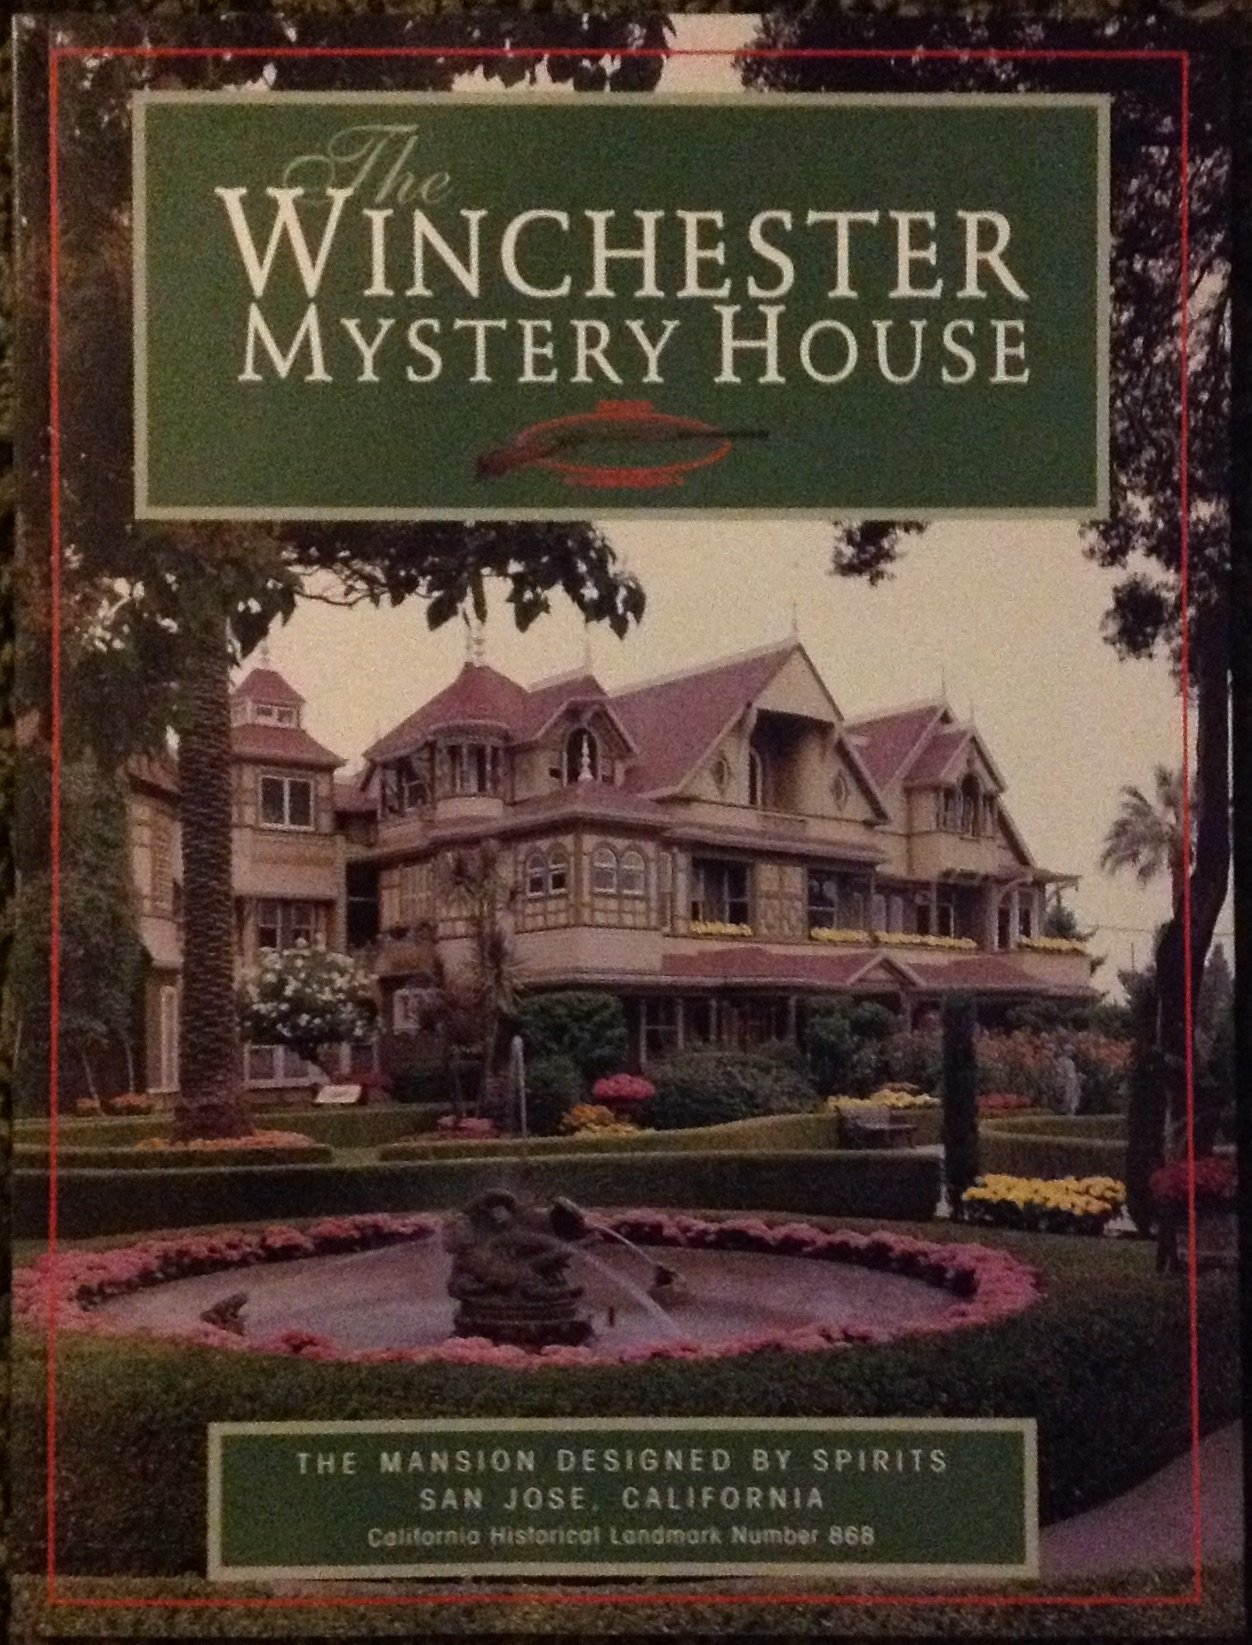 The Winchester Mystery House The Mansion Designed by Spirits